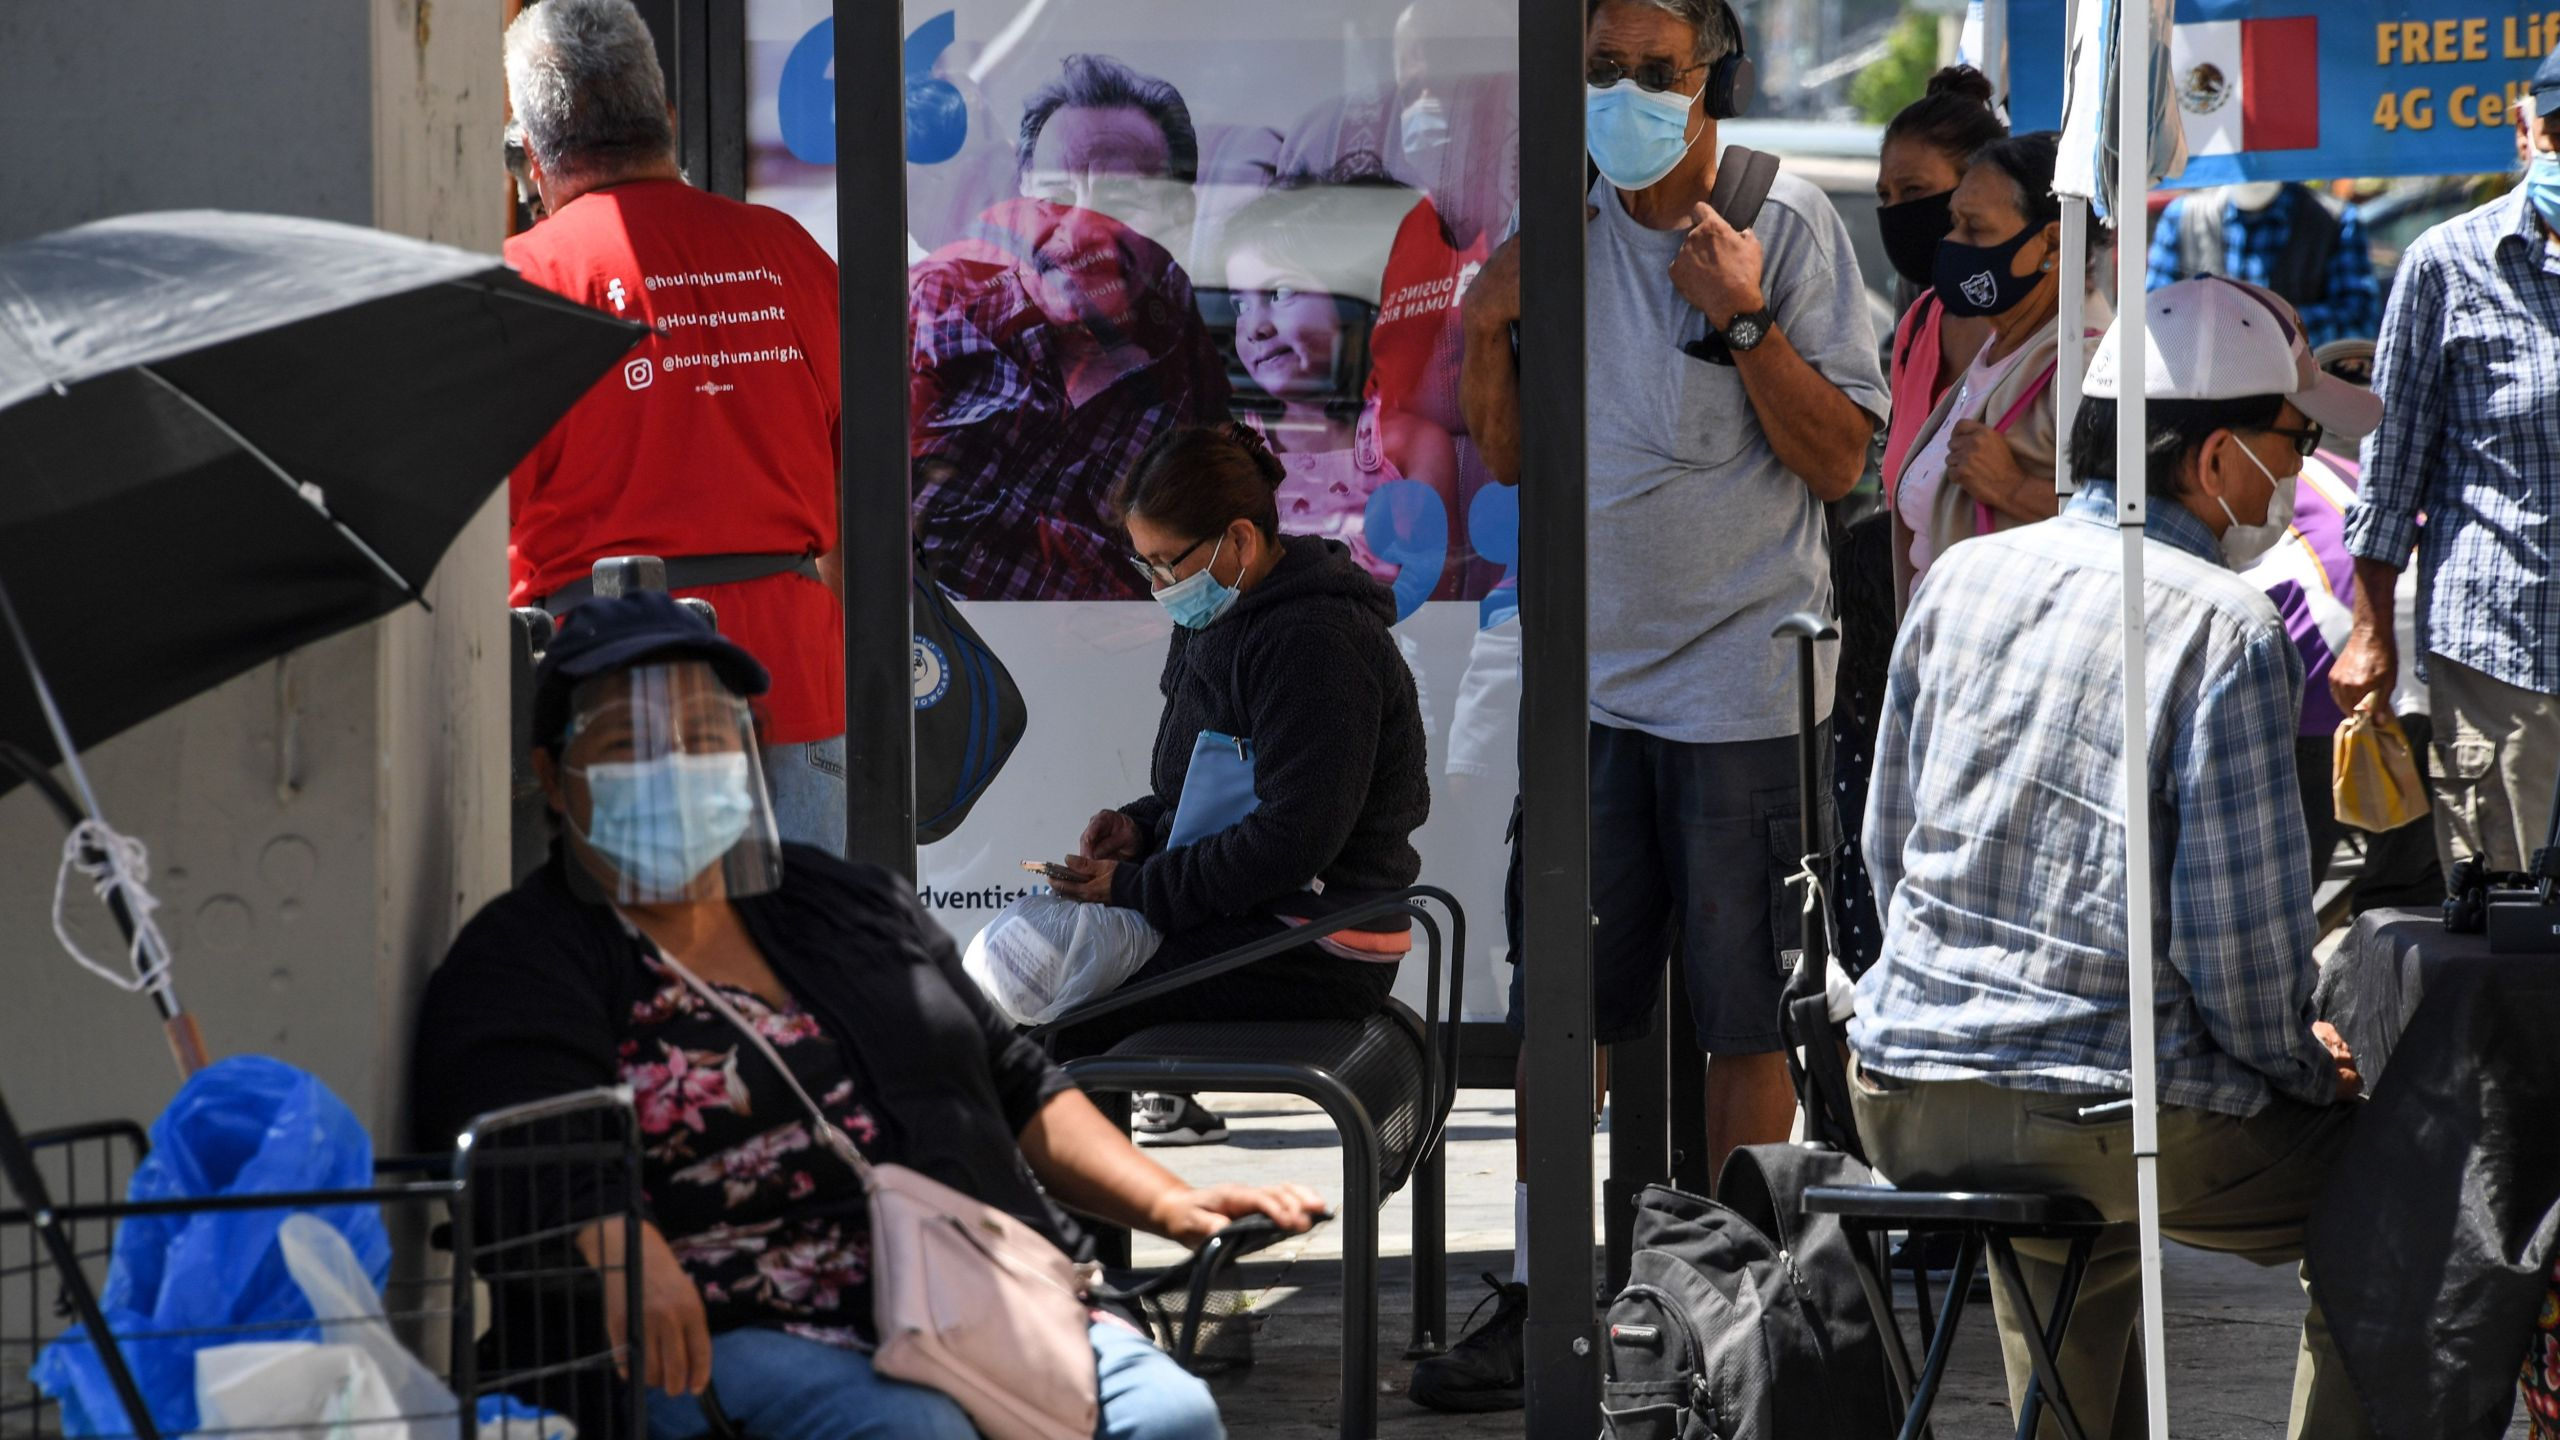 People wait for a bus in a neighborhood of East Los Angeles, Aug. 7, 2020 in Los Angeles, California during the coronavirus pandemic. (Robyn Beck/AFP via Getty Images)